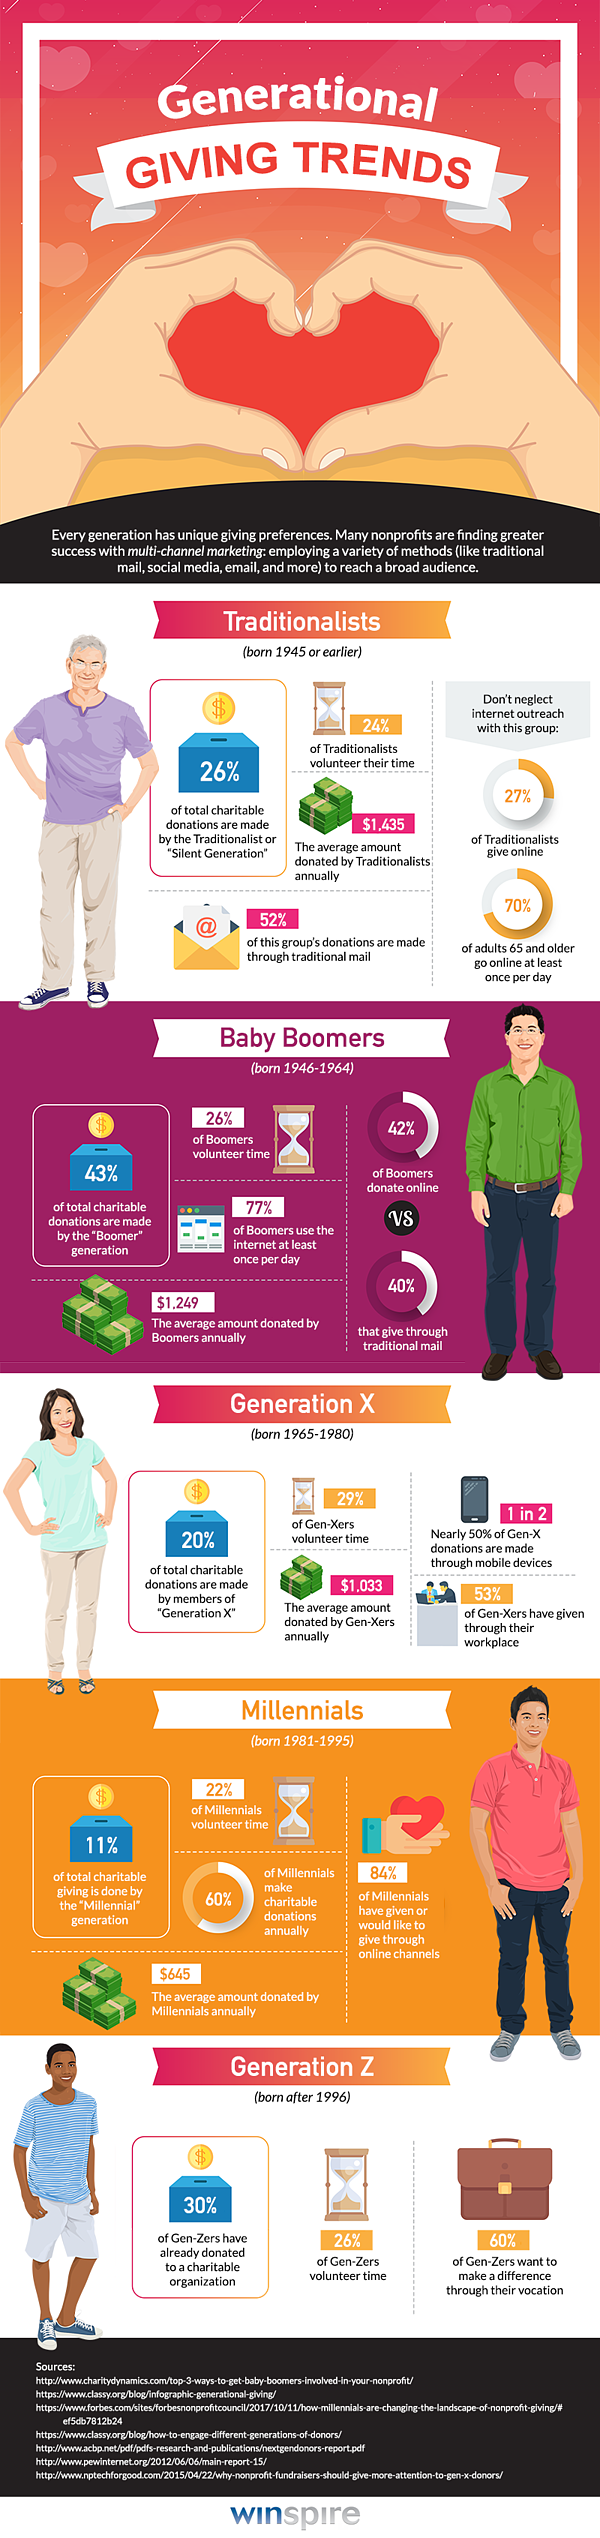 generational-giving-trends-infographic-feb2018